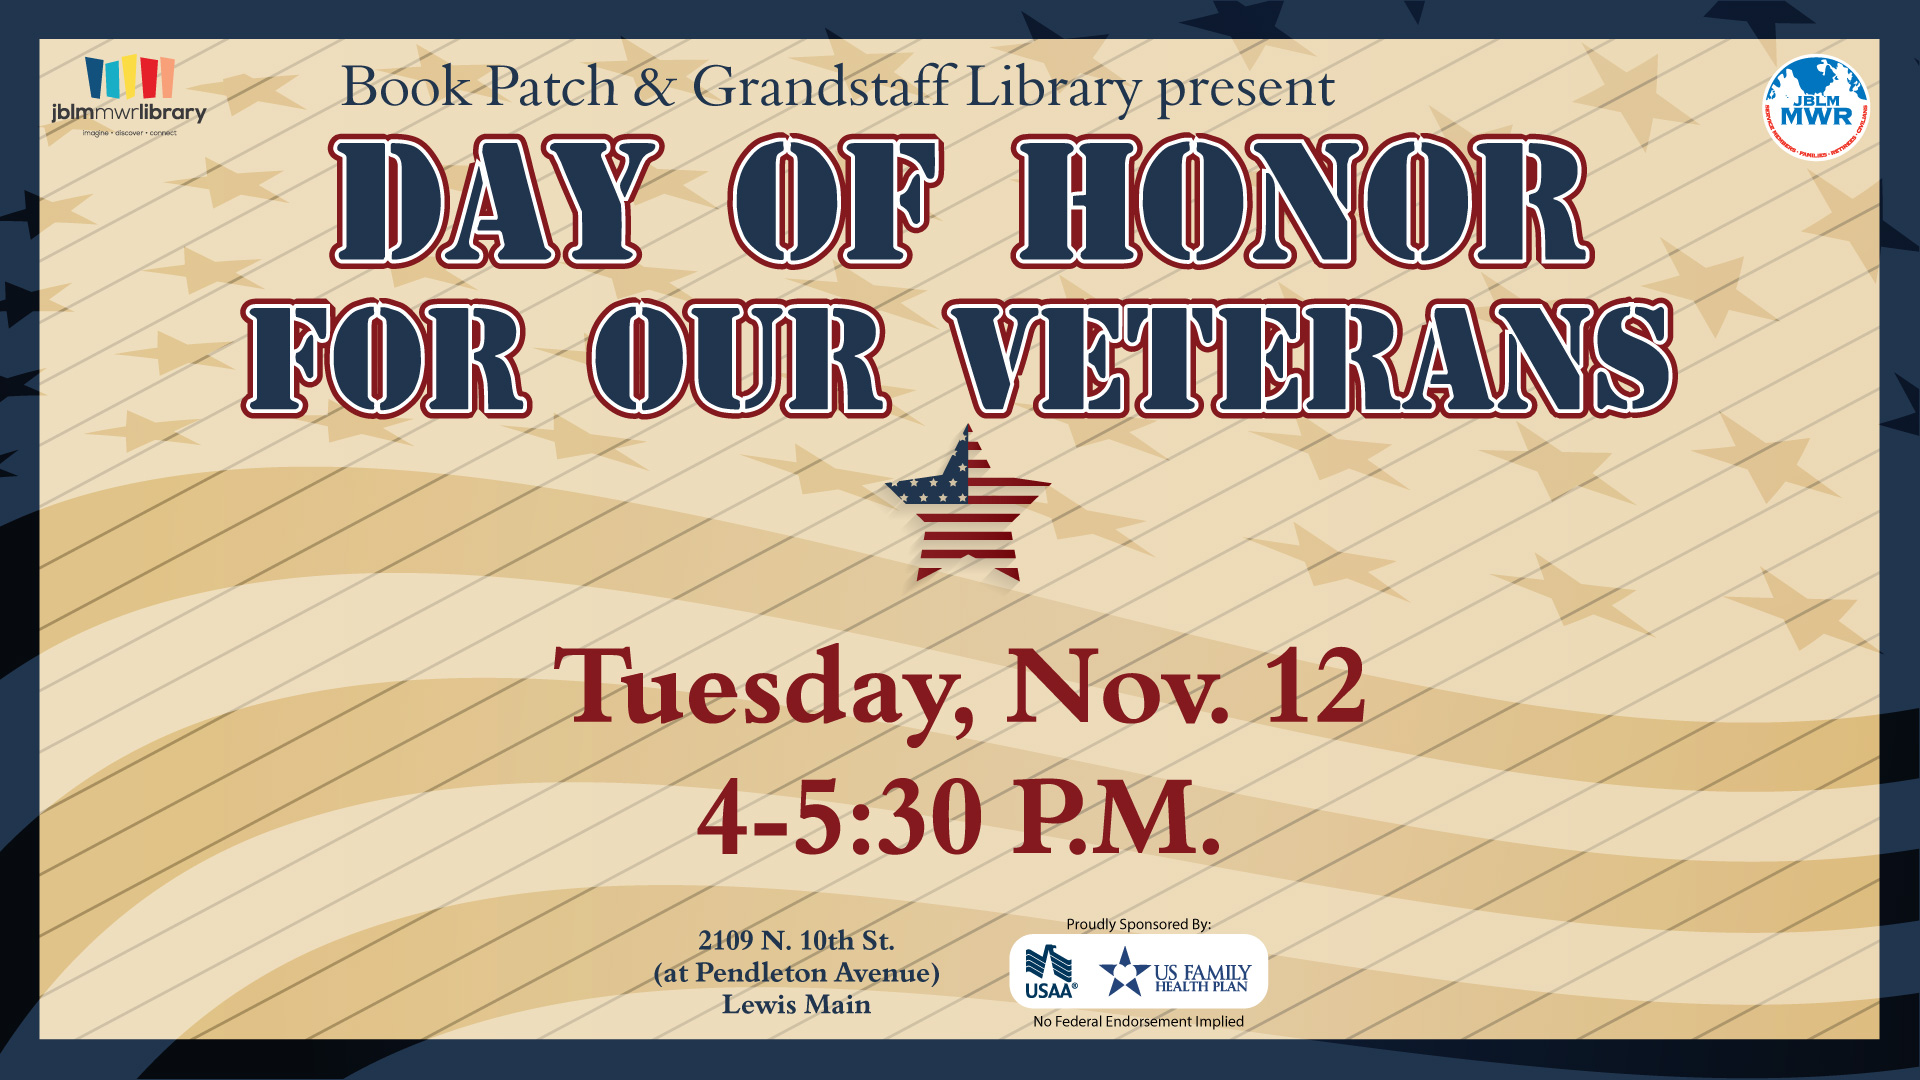 Day of Honor for our Veterans